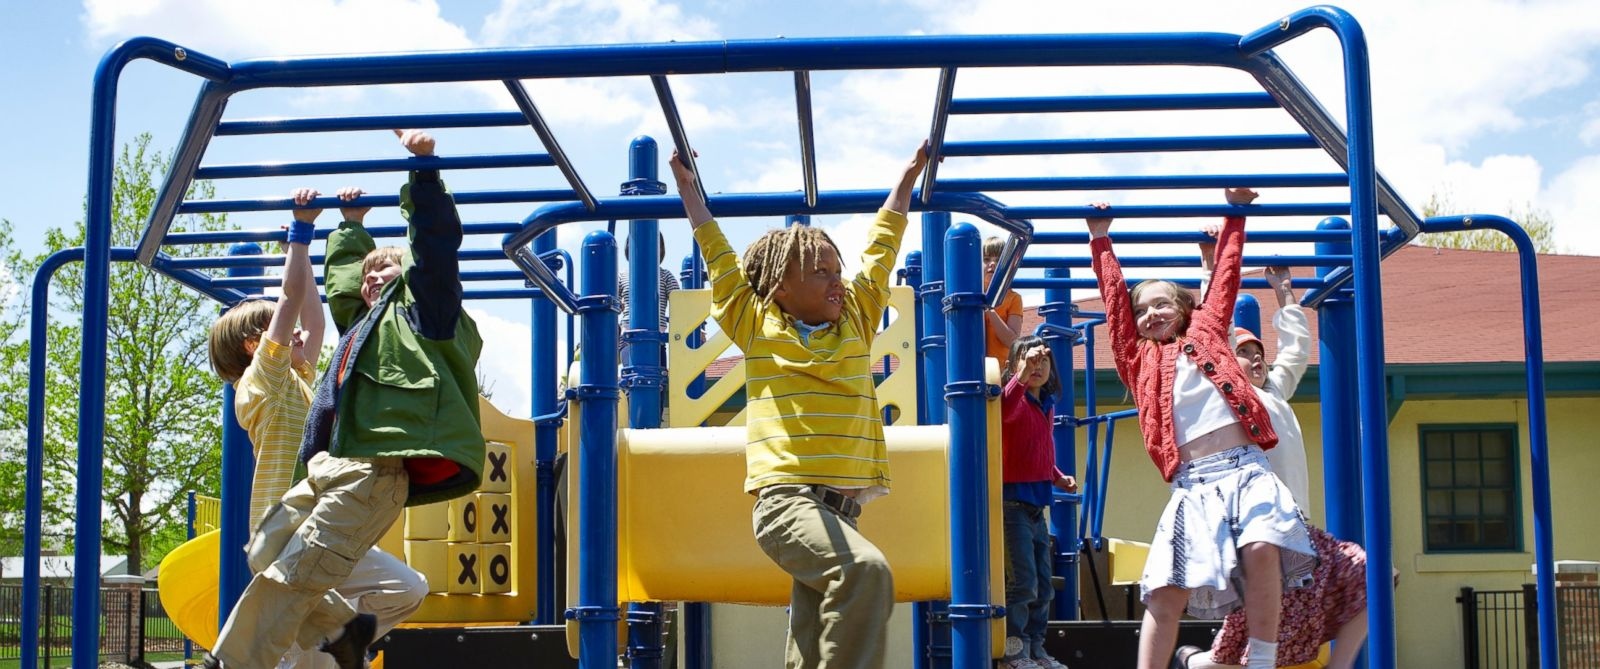 Discussion on this topic: Playground-Related Brain Injuries on Rise in U.S, playground-related-brain-injuries-on-rise-in-u-s/